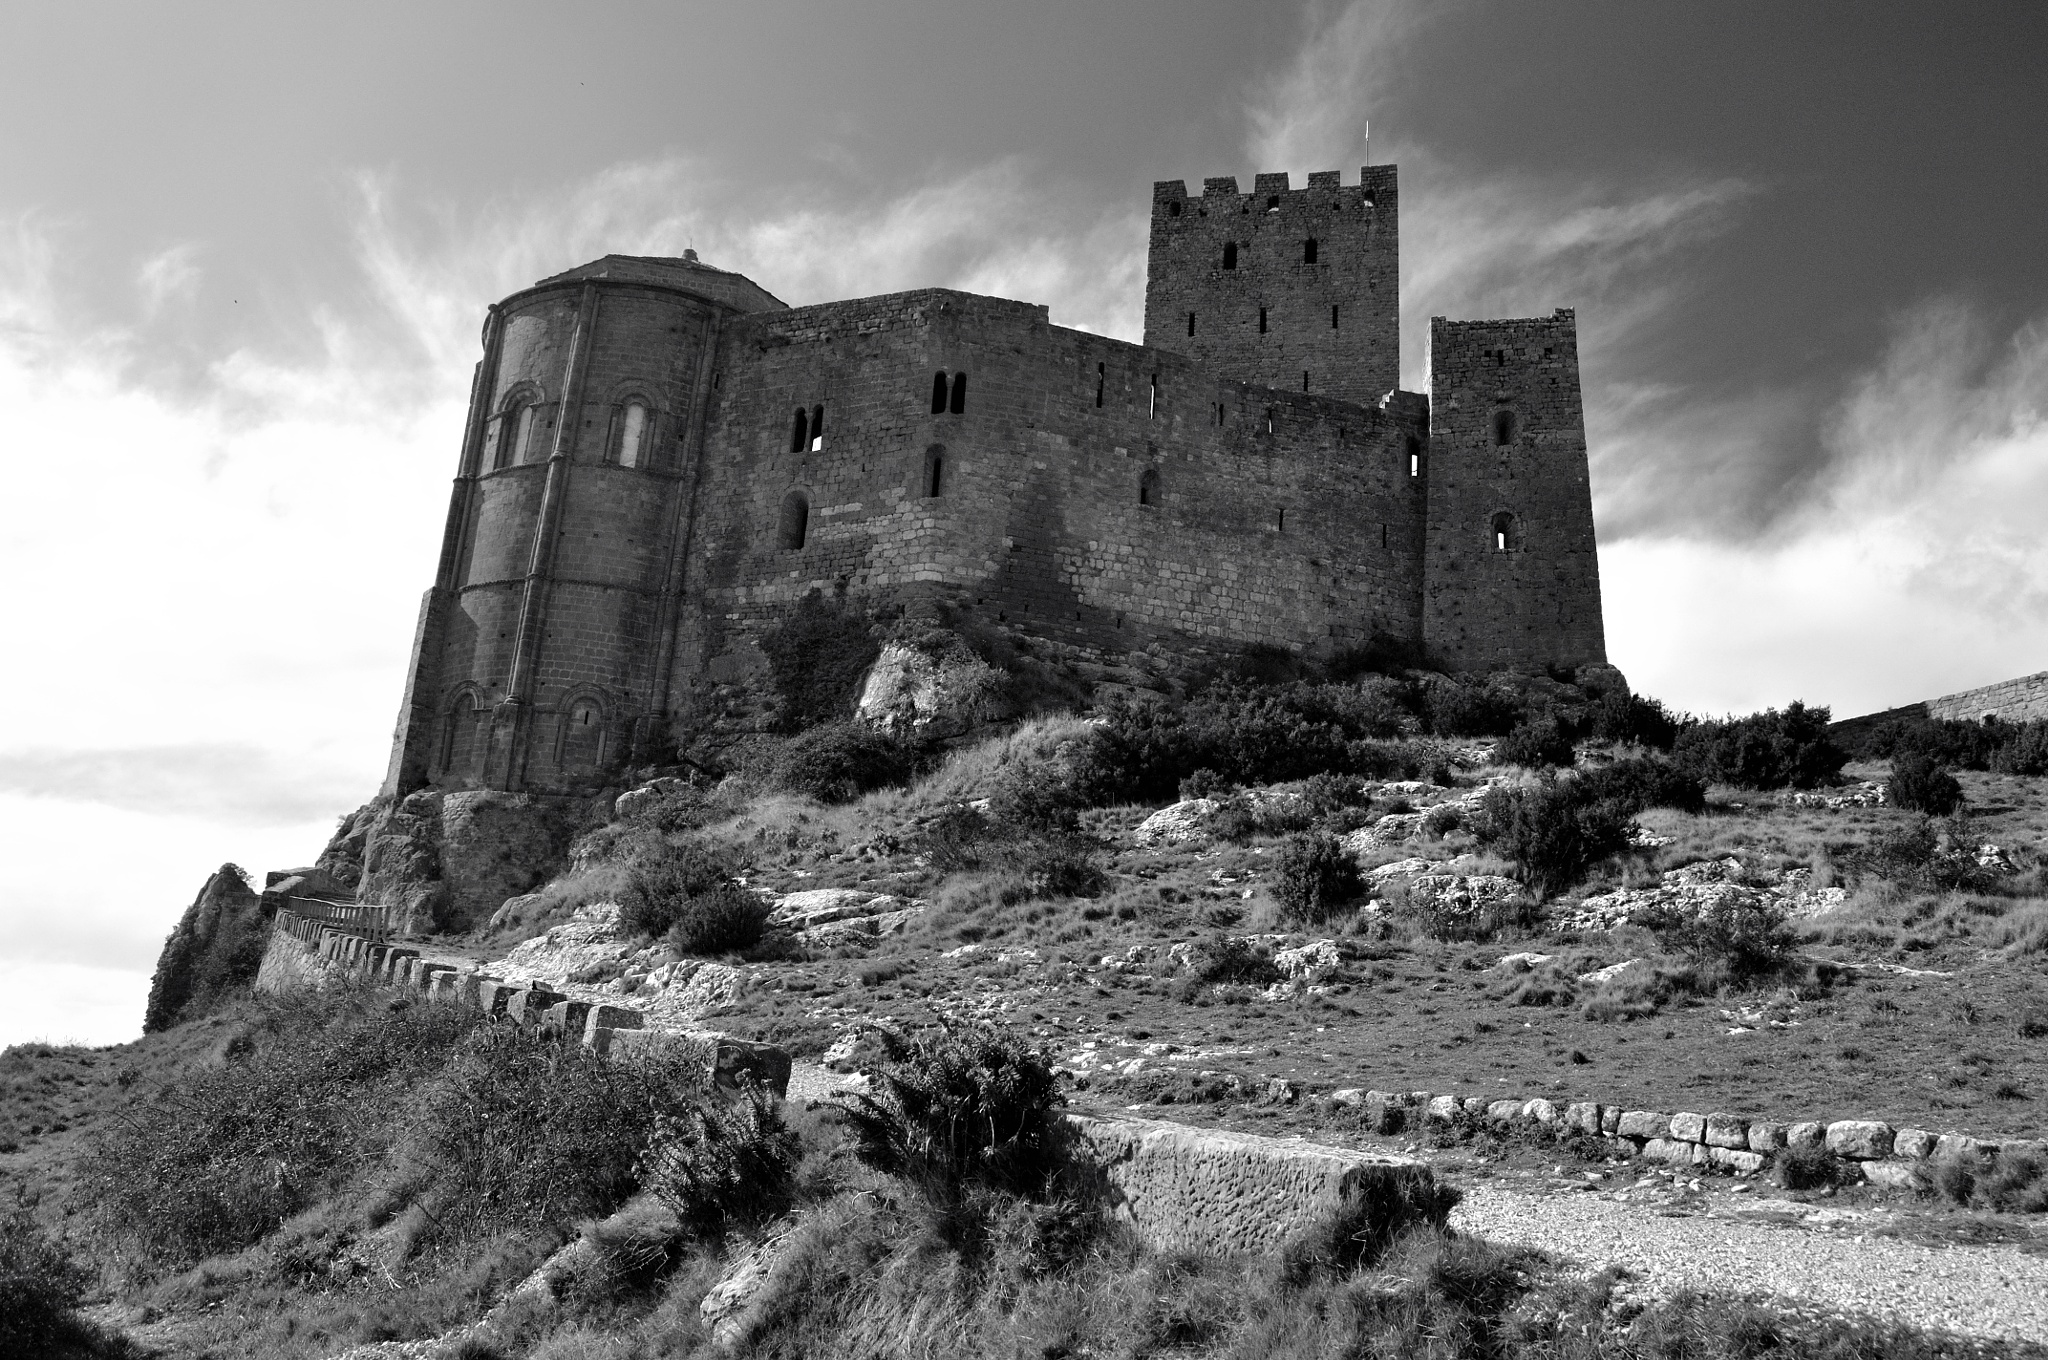 Loarre Castle by Ogalcor